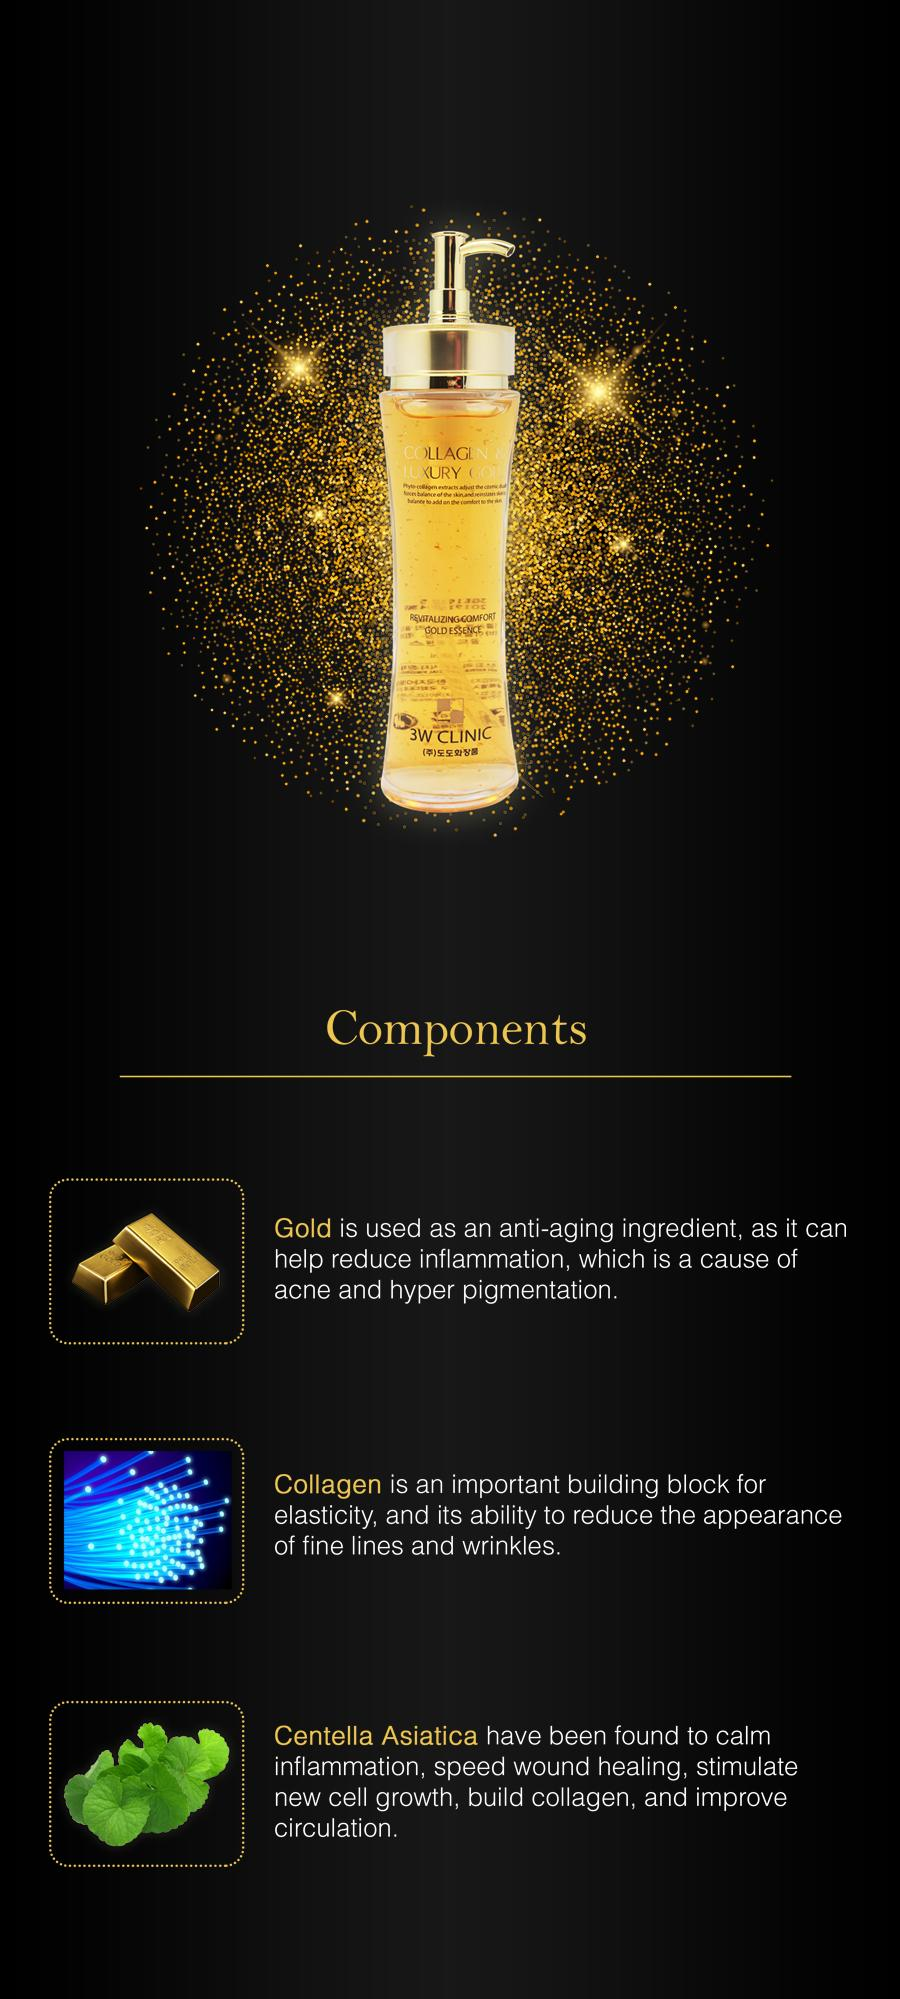 3w clinic collagen & luxury gold essence 1